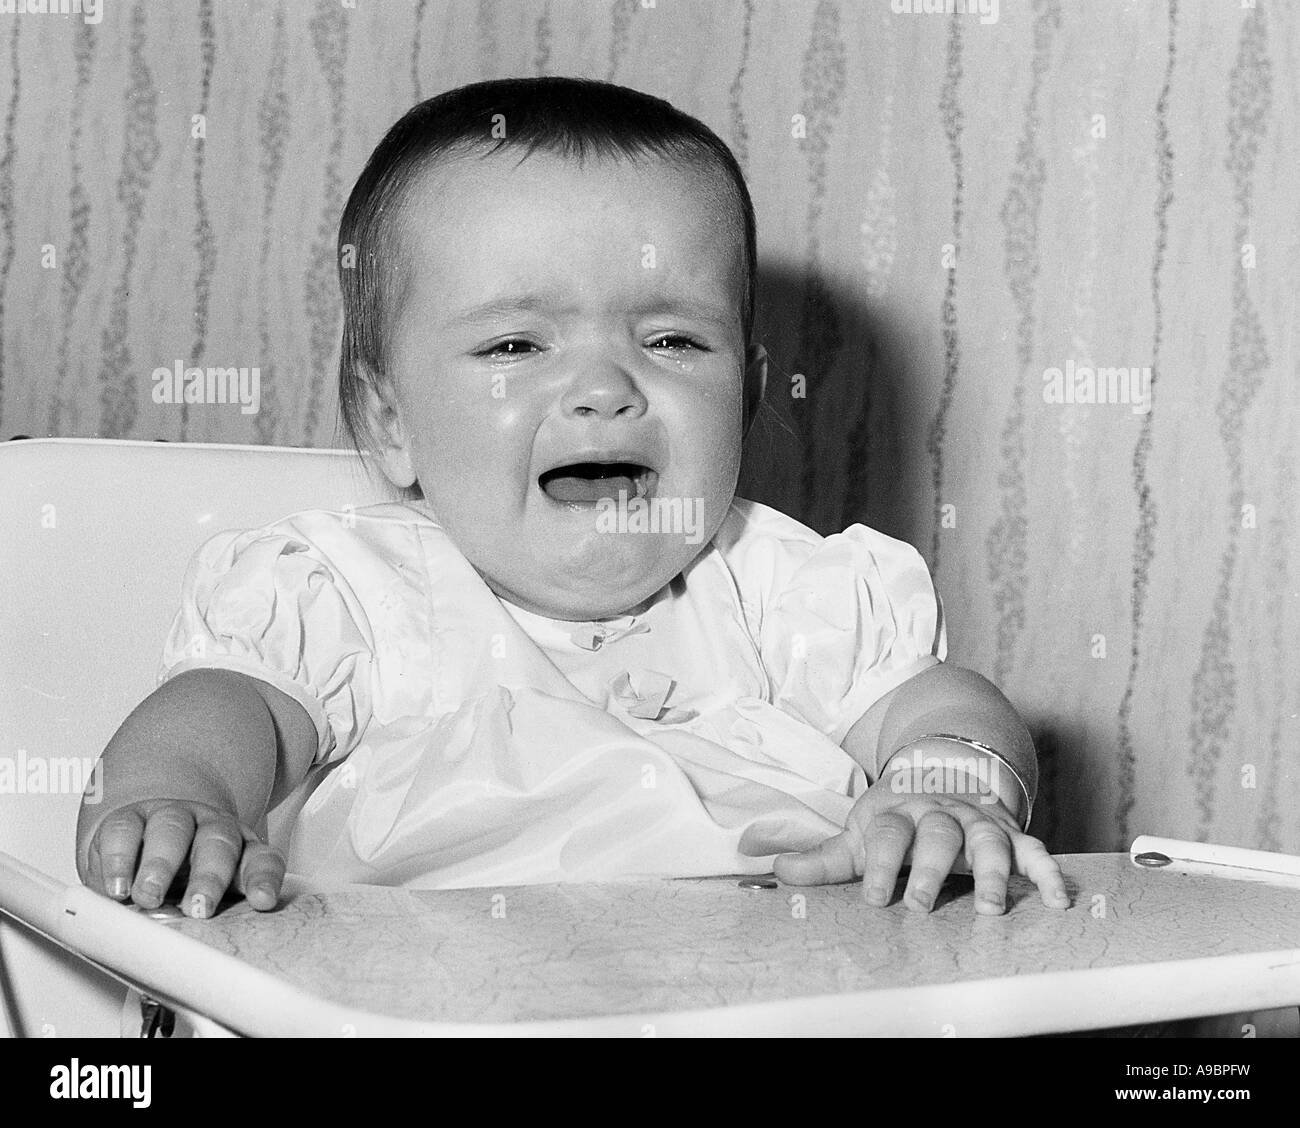 Crying Girl Black And White Stock Photos  Images - Alamy-4615